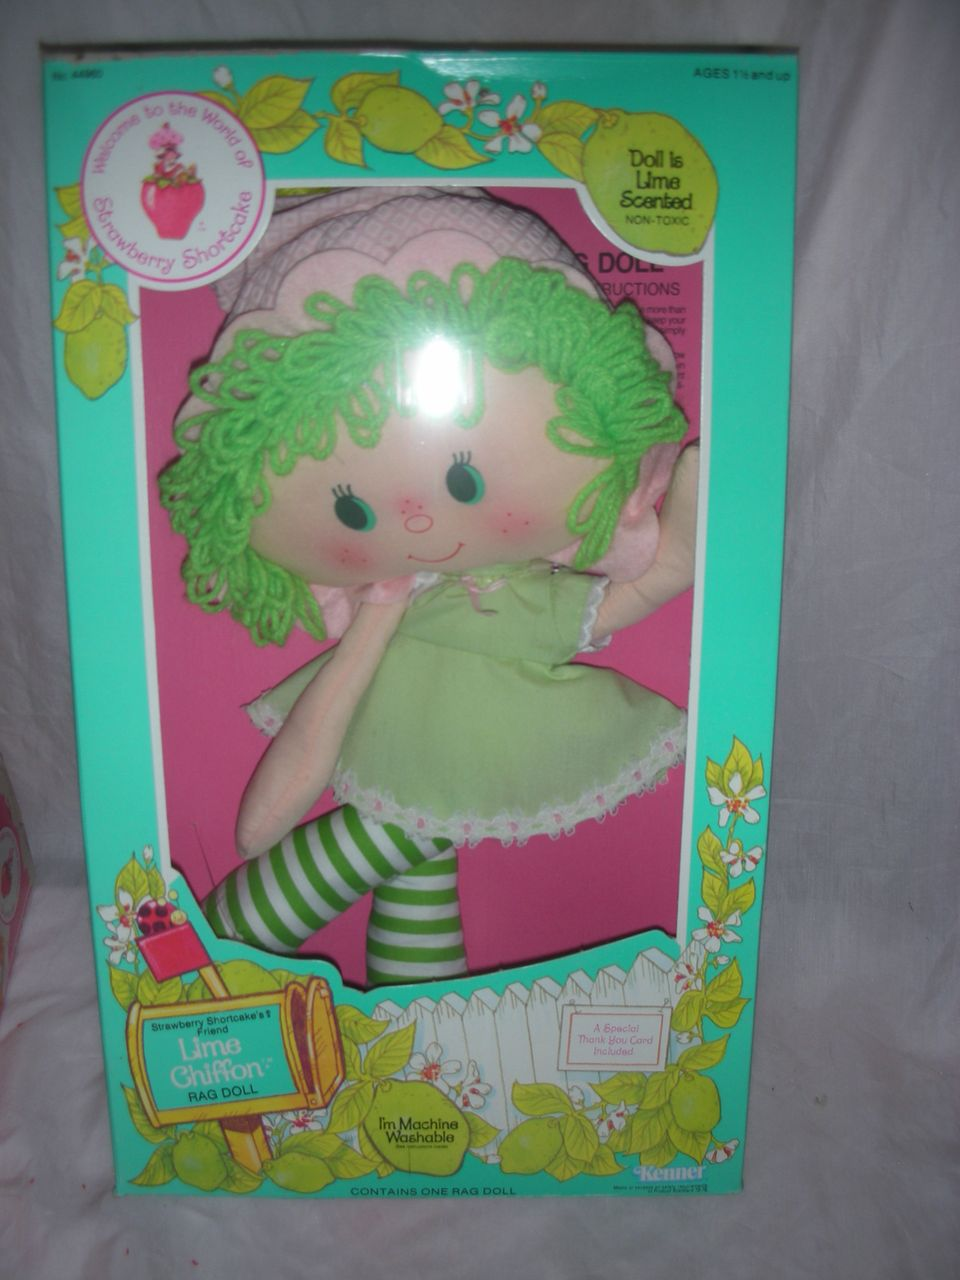 Vintage Lime Chiffon Strawberry Shortcake Rag Doll NRFB from rubylane ...